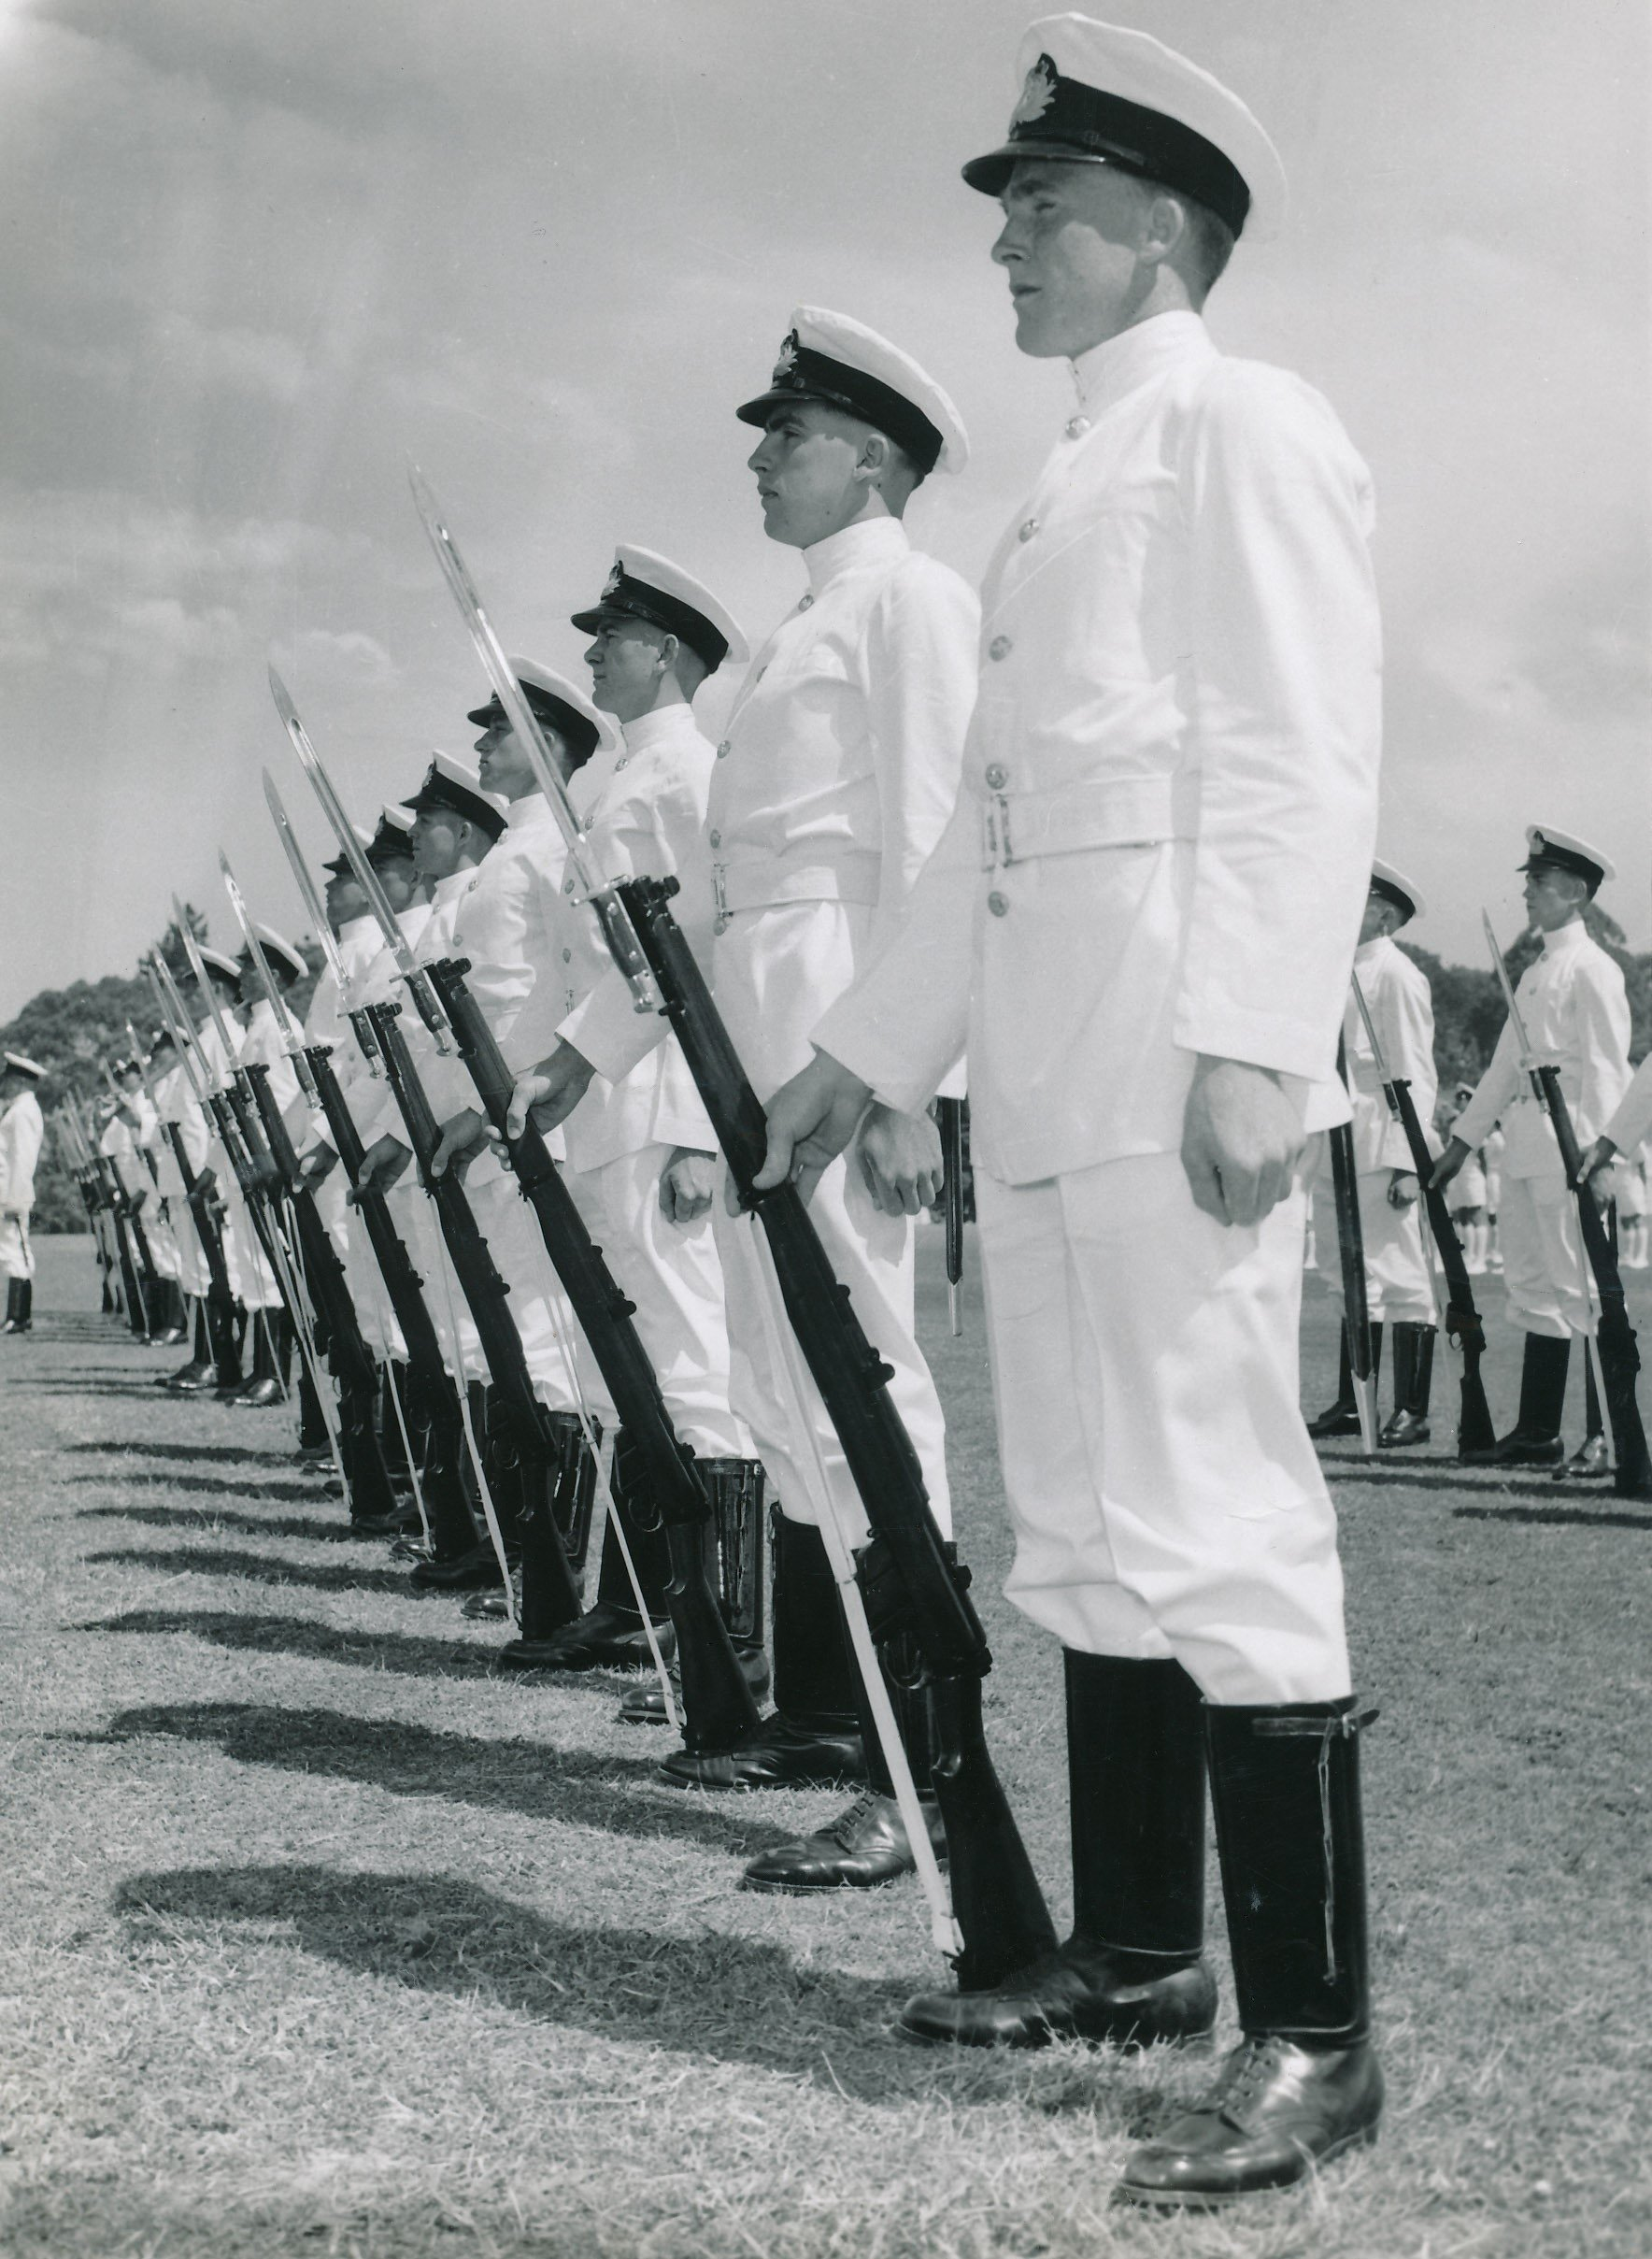 """Bruce's 1959 graduation, he was left hand marker in the Guard for the ceremony, at the Royal Australian Naval College.  """"He was Cadet Captain in our graduation parade in December 1959.  That's me next to Bruce"""" (John is second from right in photo, Bruce furthest right).  Photo and information credit John Ingram"""